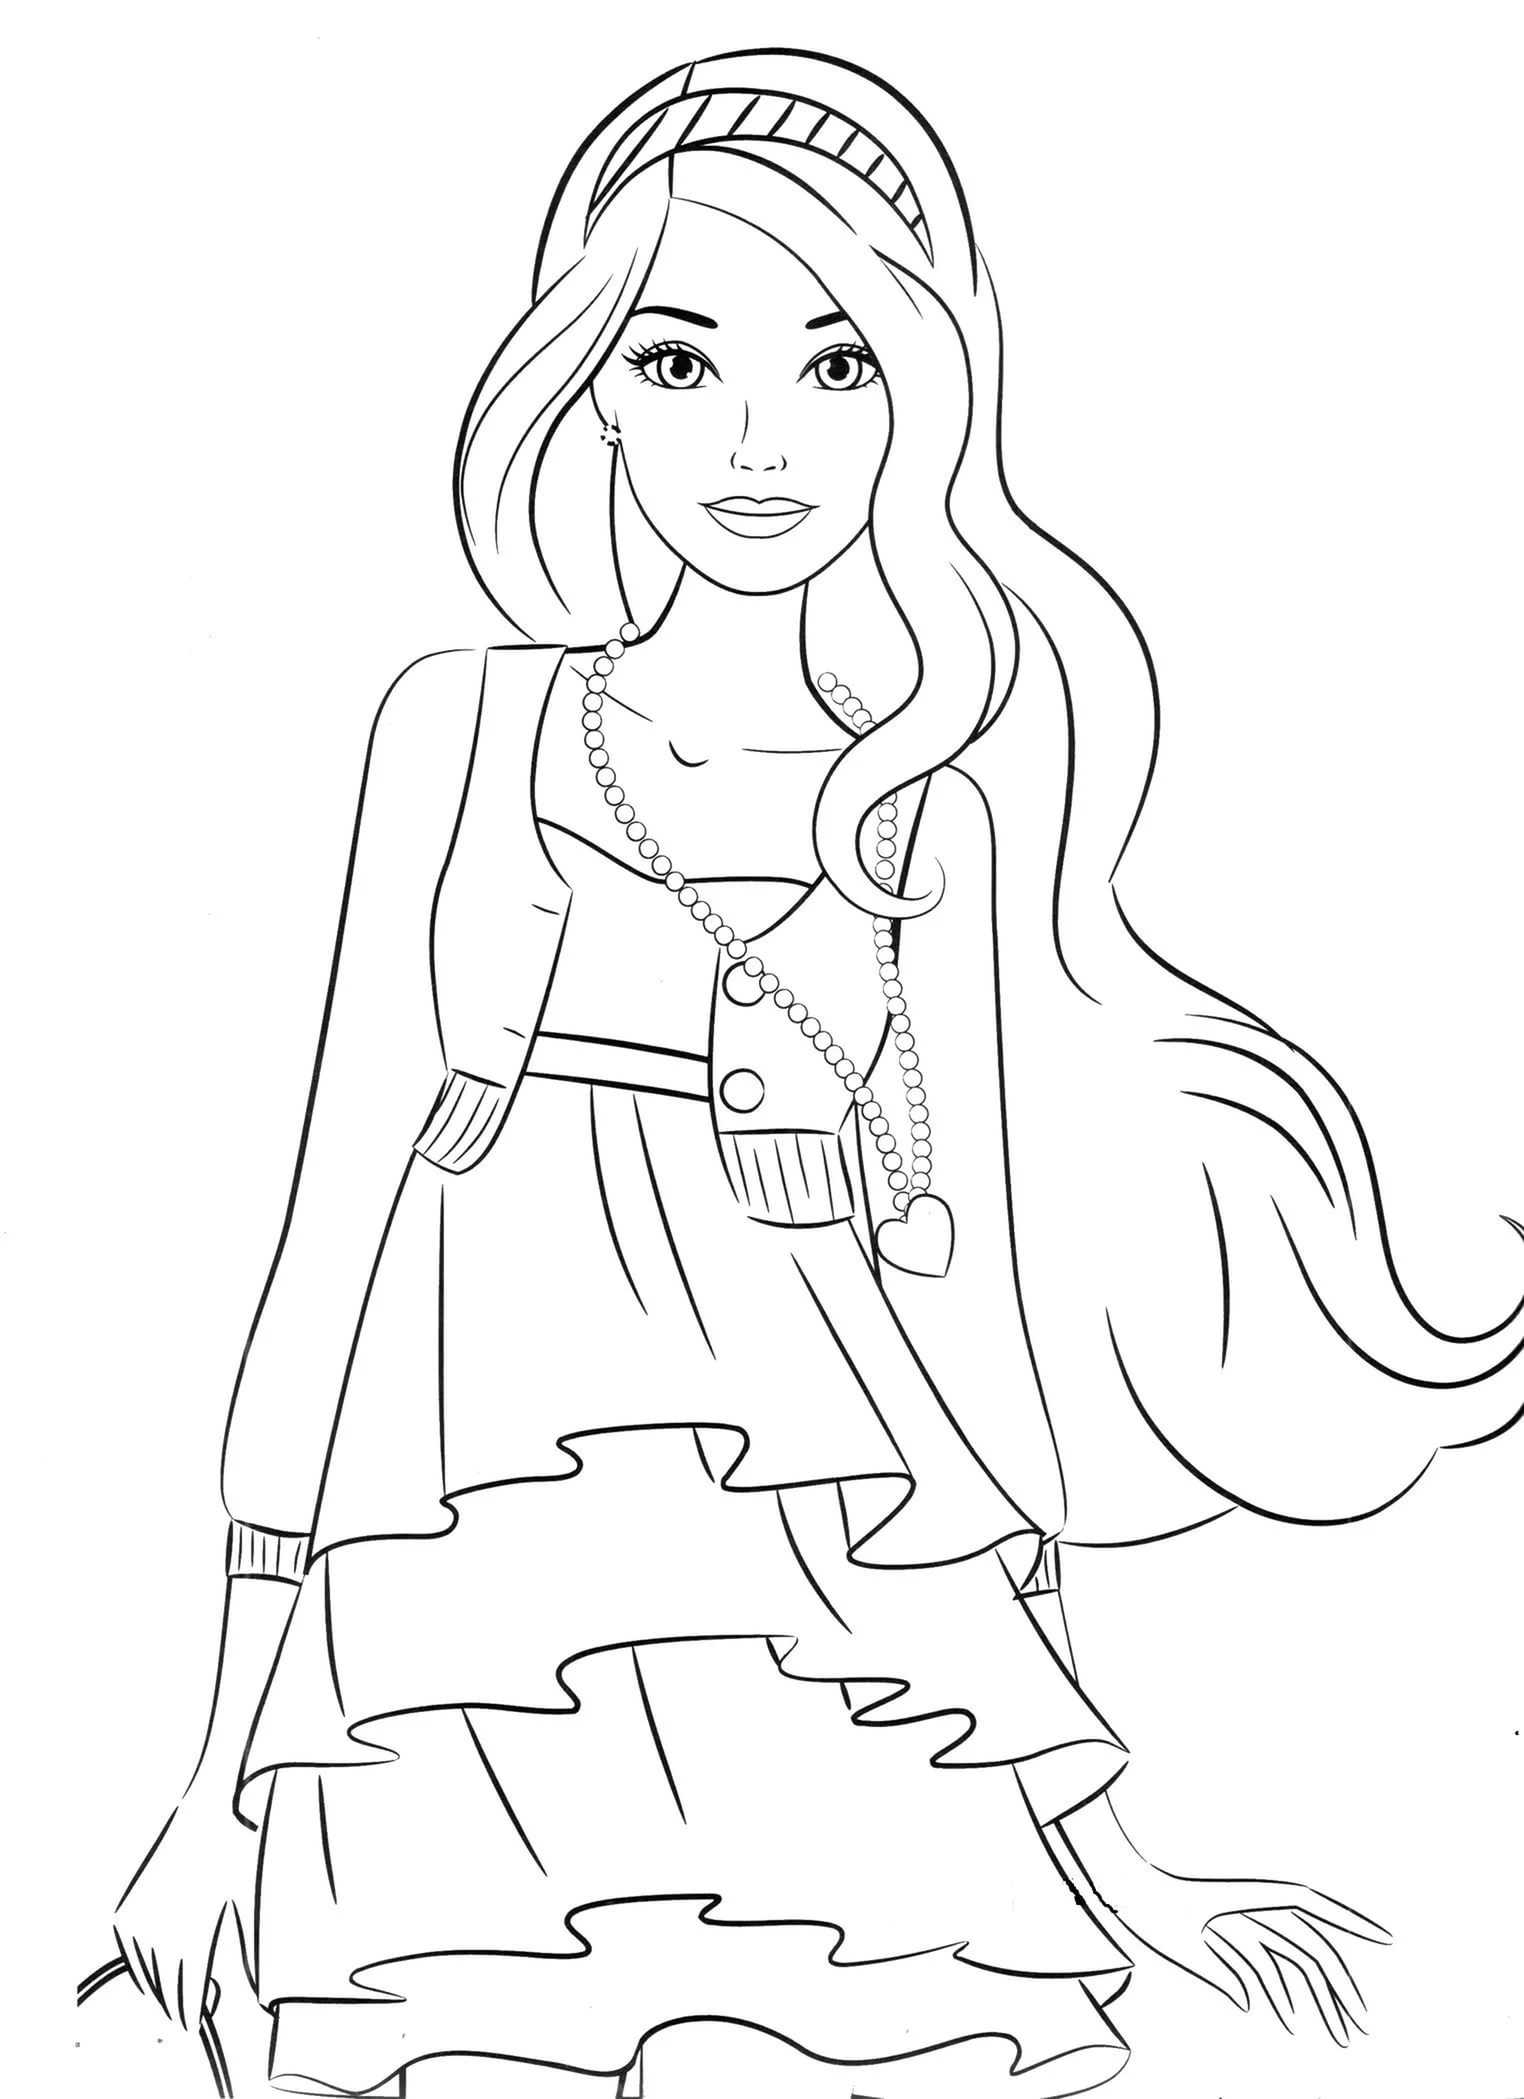 coloring pages for 8 year olds pages for 8 year olds coloring pages pages for 8 olds year coloring